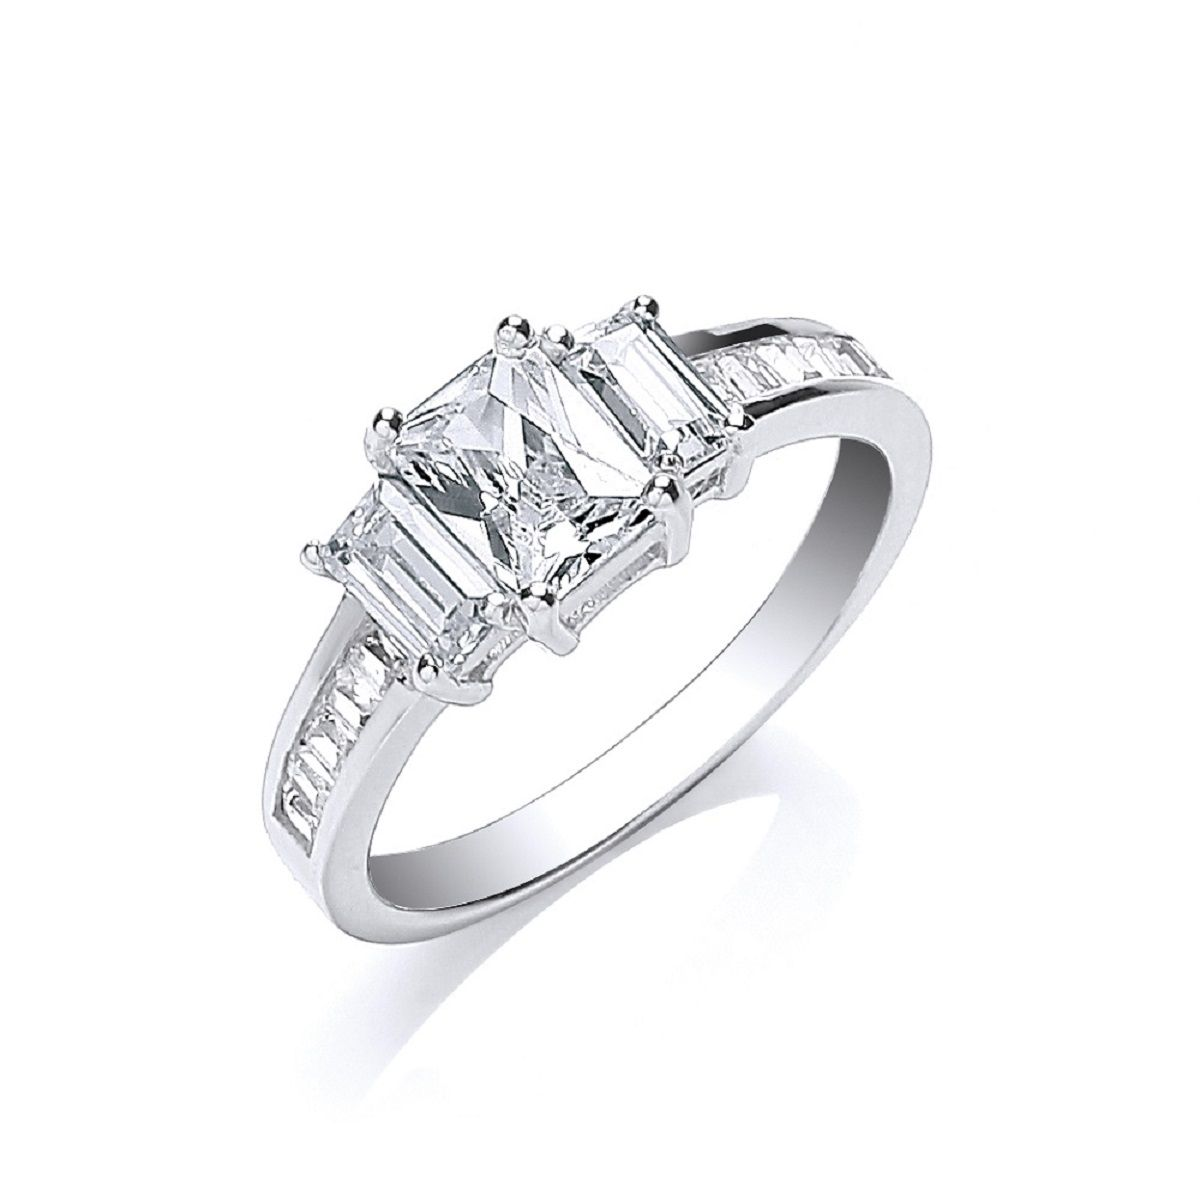 e81e0fa84 Sterling silver Emerald cut Cubic Zirconia trilogy ring with baguette ...